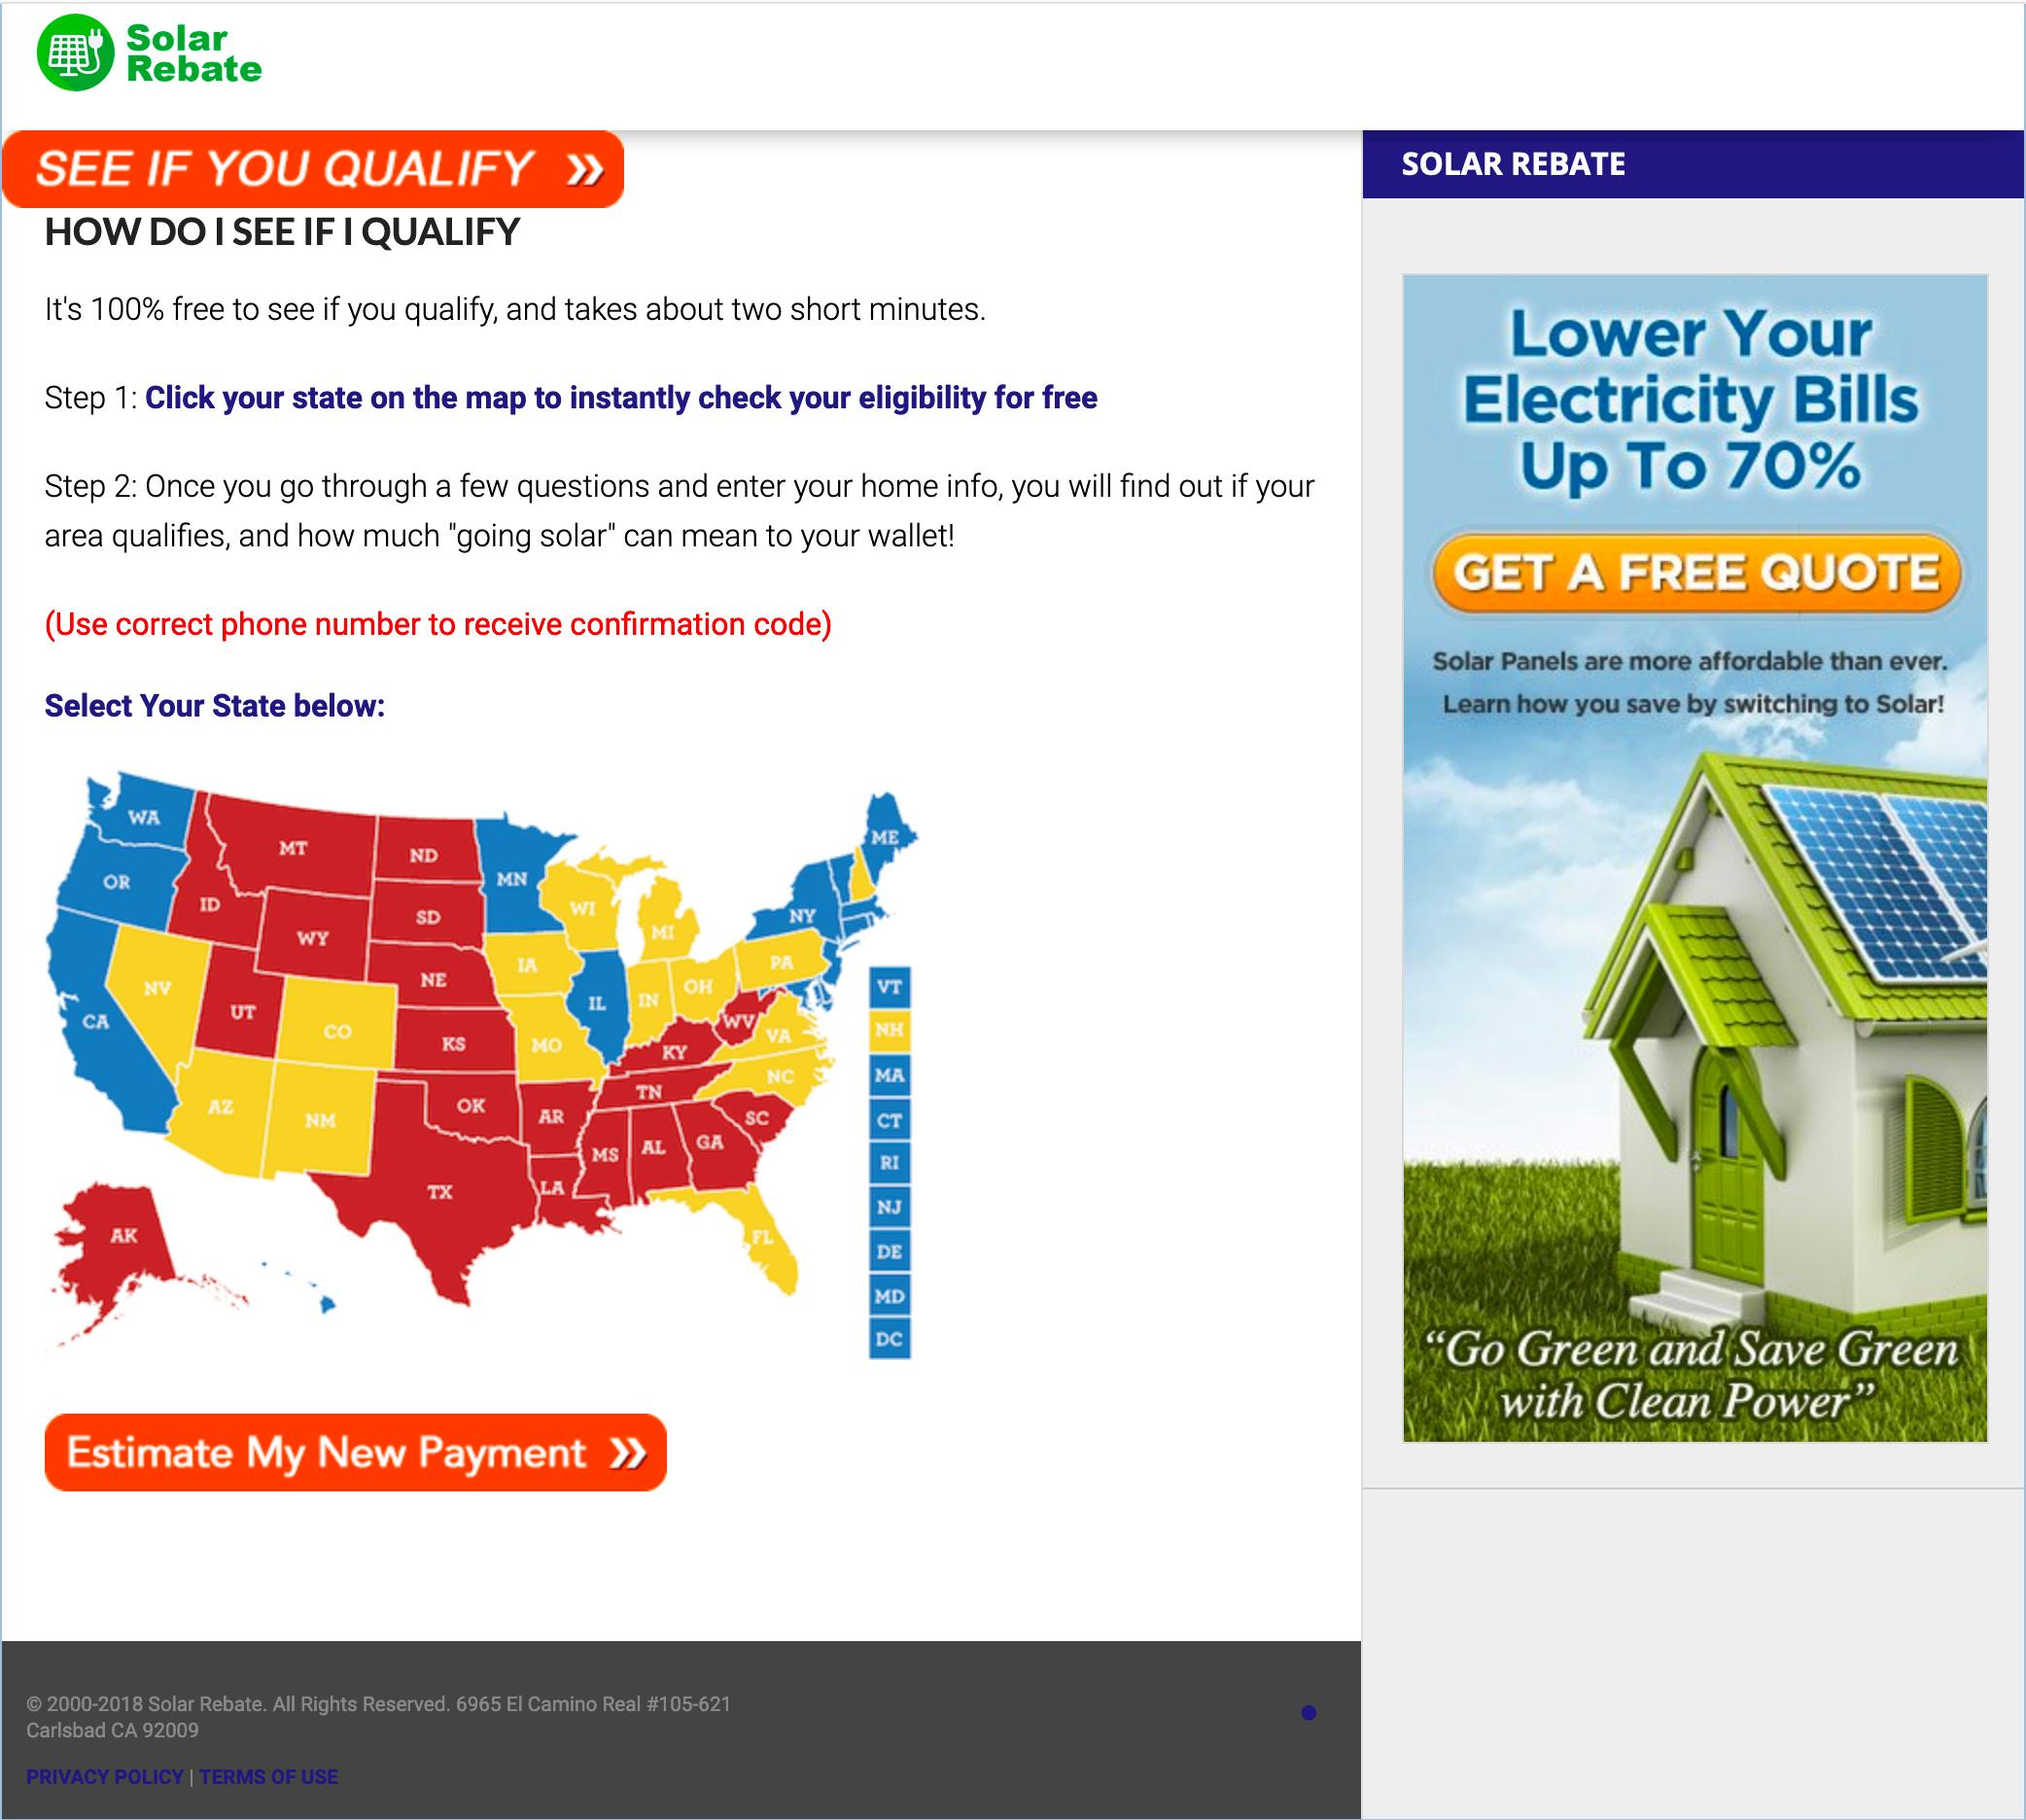 FILE - This March 27, 2019 image shows a website re-directed from ads promising big state tax incentives placed on Facebook. Hundreds of ads running on Facebook for more than a year promised that governors across the country had signed off on big tax breaks for U.S. homeowners who wanted to install new solar energy panels. But the tax incentives didn't exist. (Solar Rebate via AP)